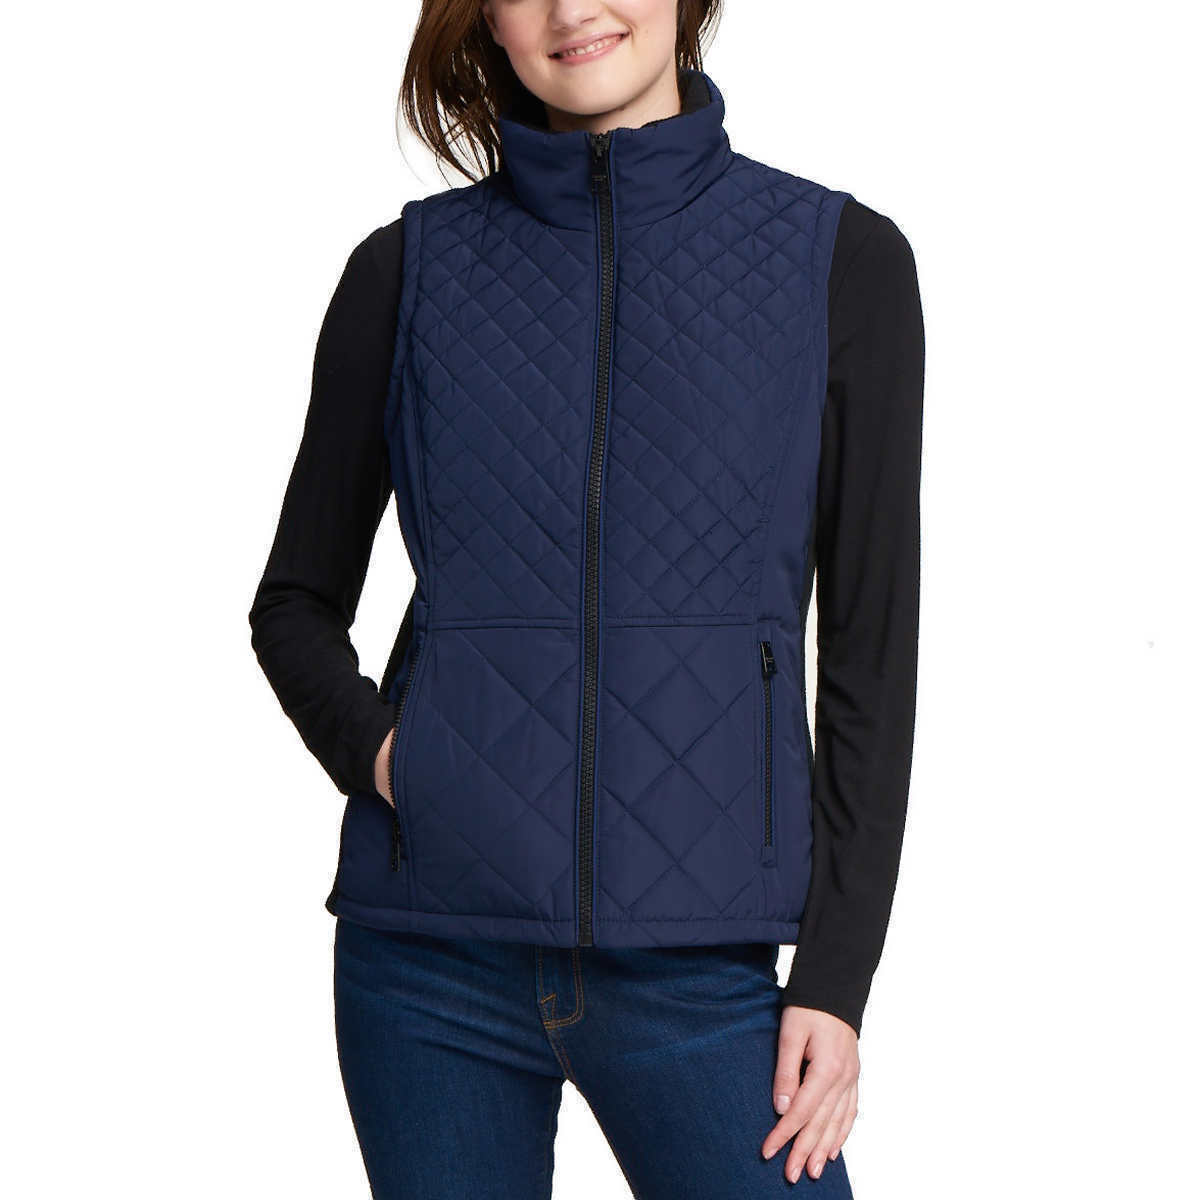 NEW Andrew Marc Women's Marine Blue Quilted Insulated Zip Up Vest